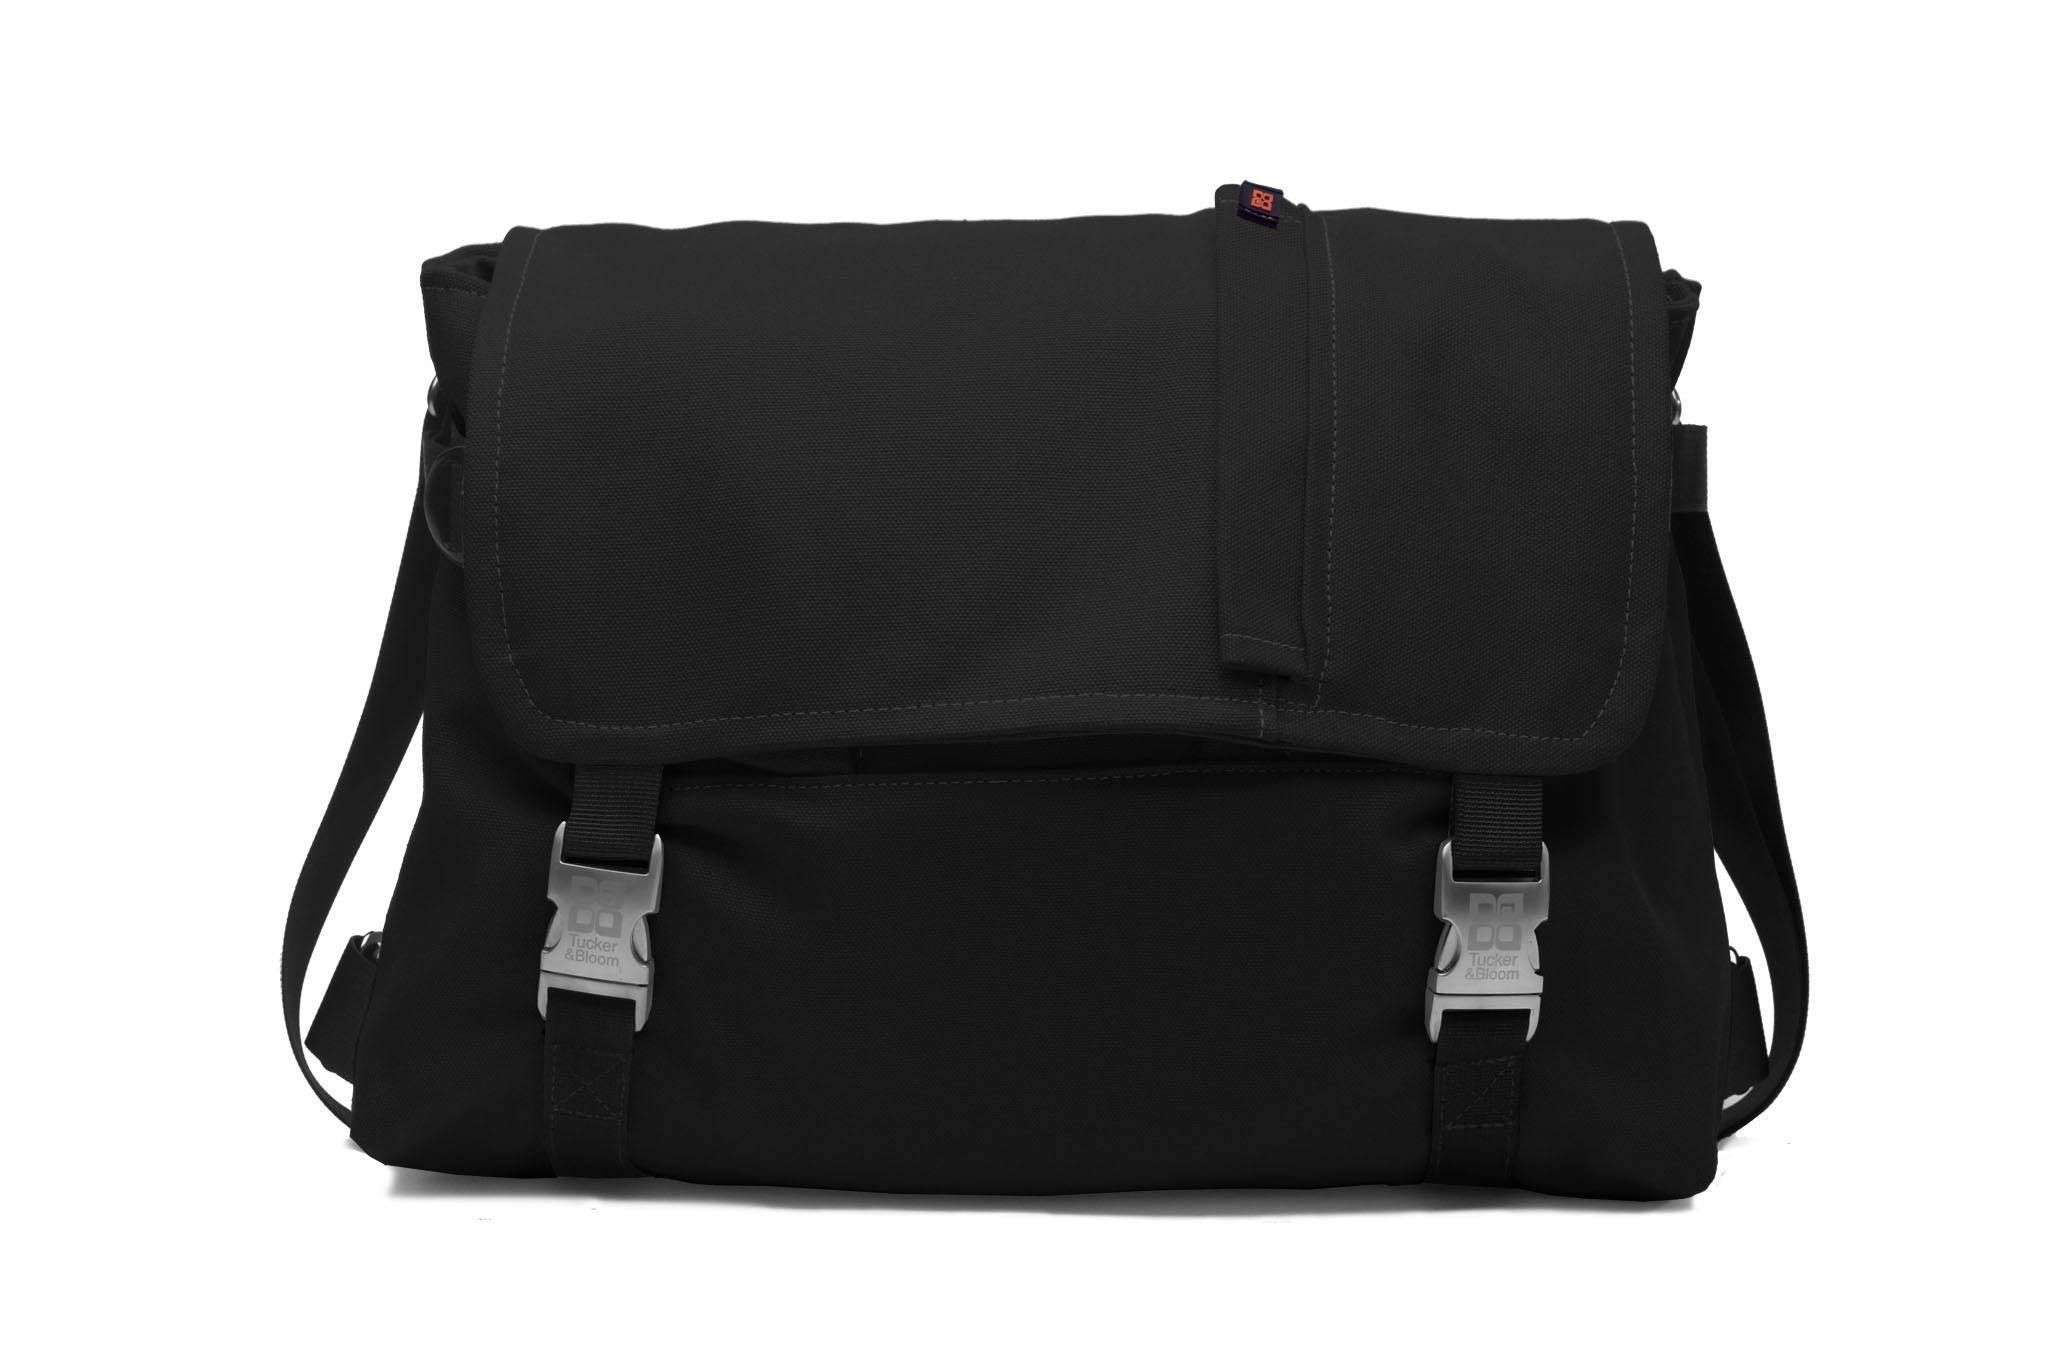 Canvas Simple Messenger Bag in various sizes and colors. Made in USA with a lifetime warranty.